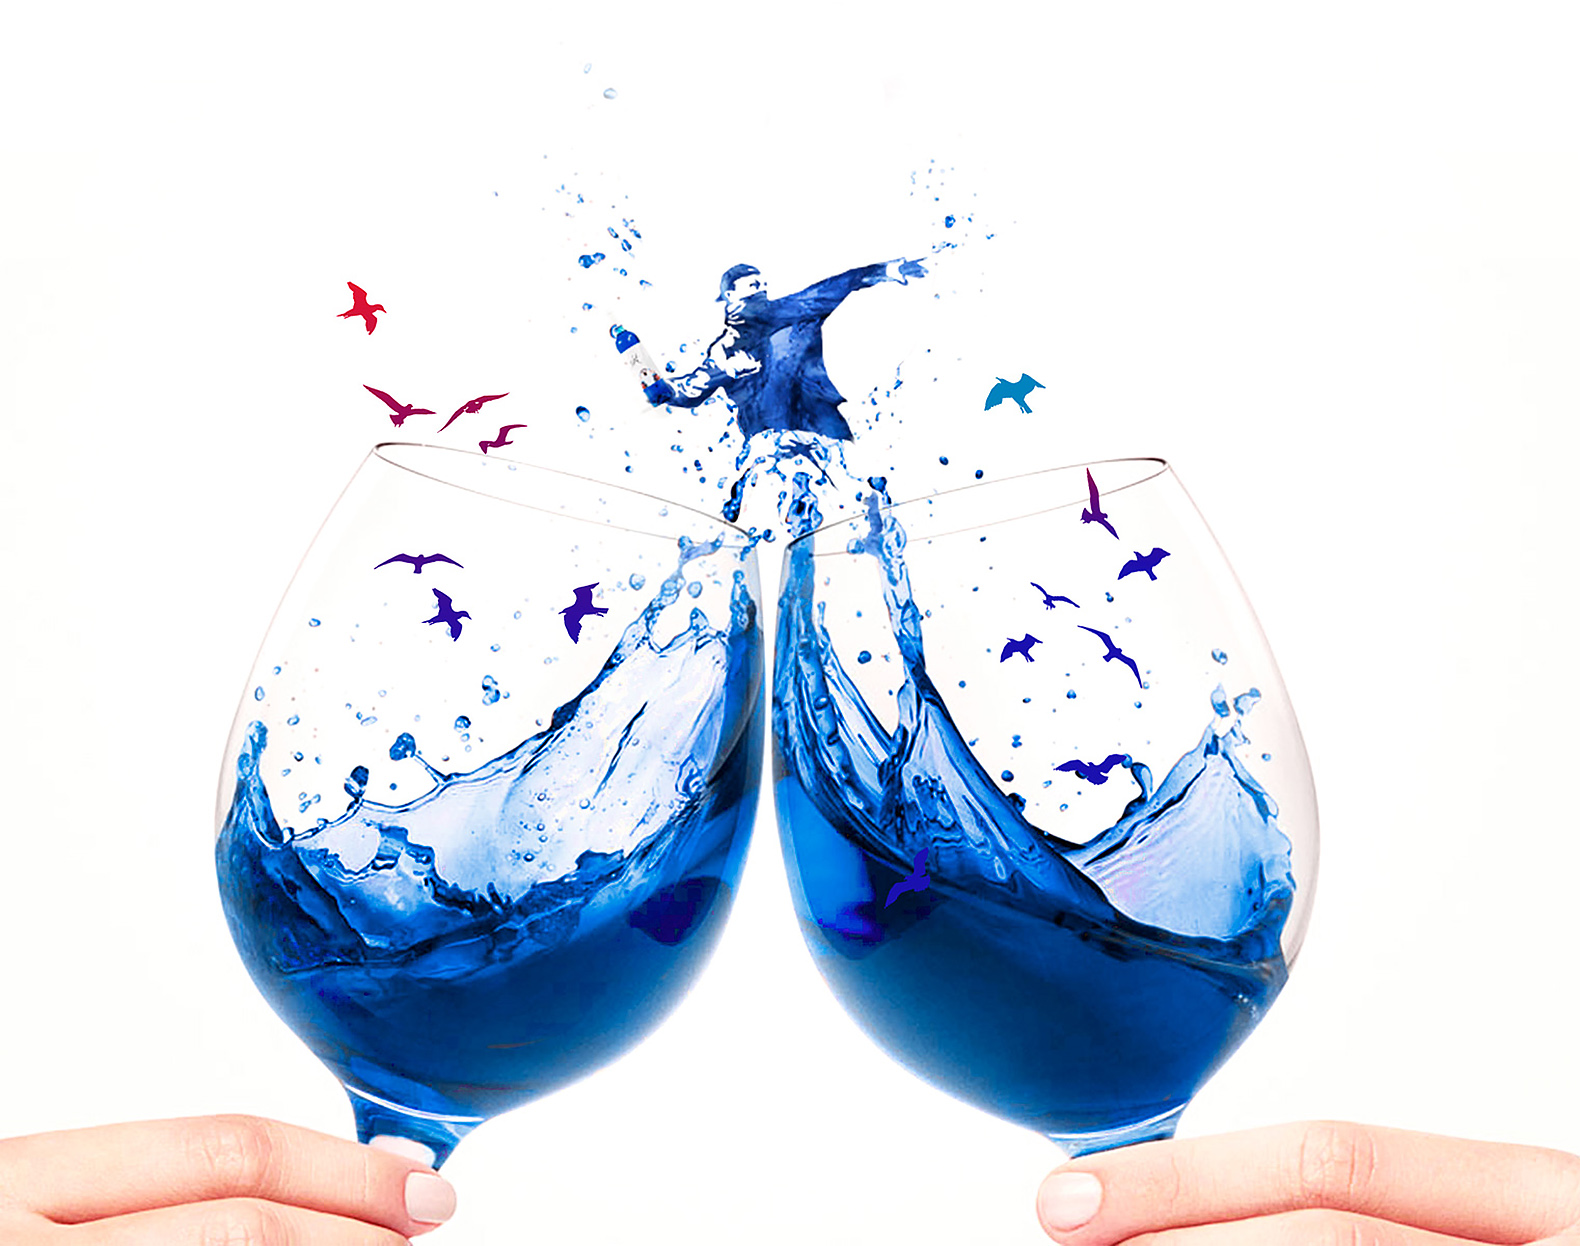 Gïk, Gïk Blue Wine, blue wine, wine, Basque Country, Spain, entrepreneuers, wine variety, Europe, European wine